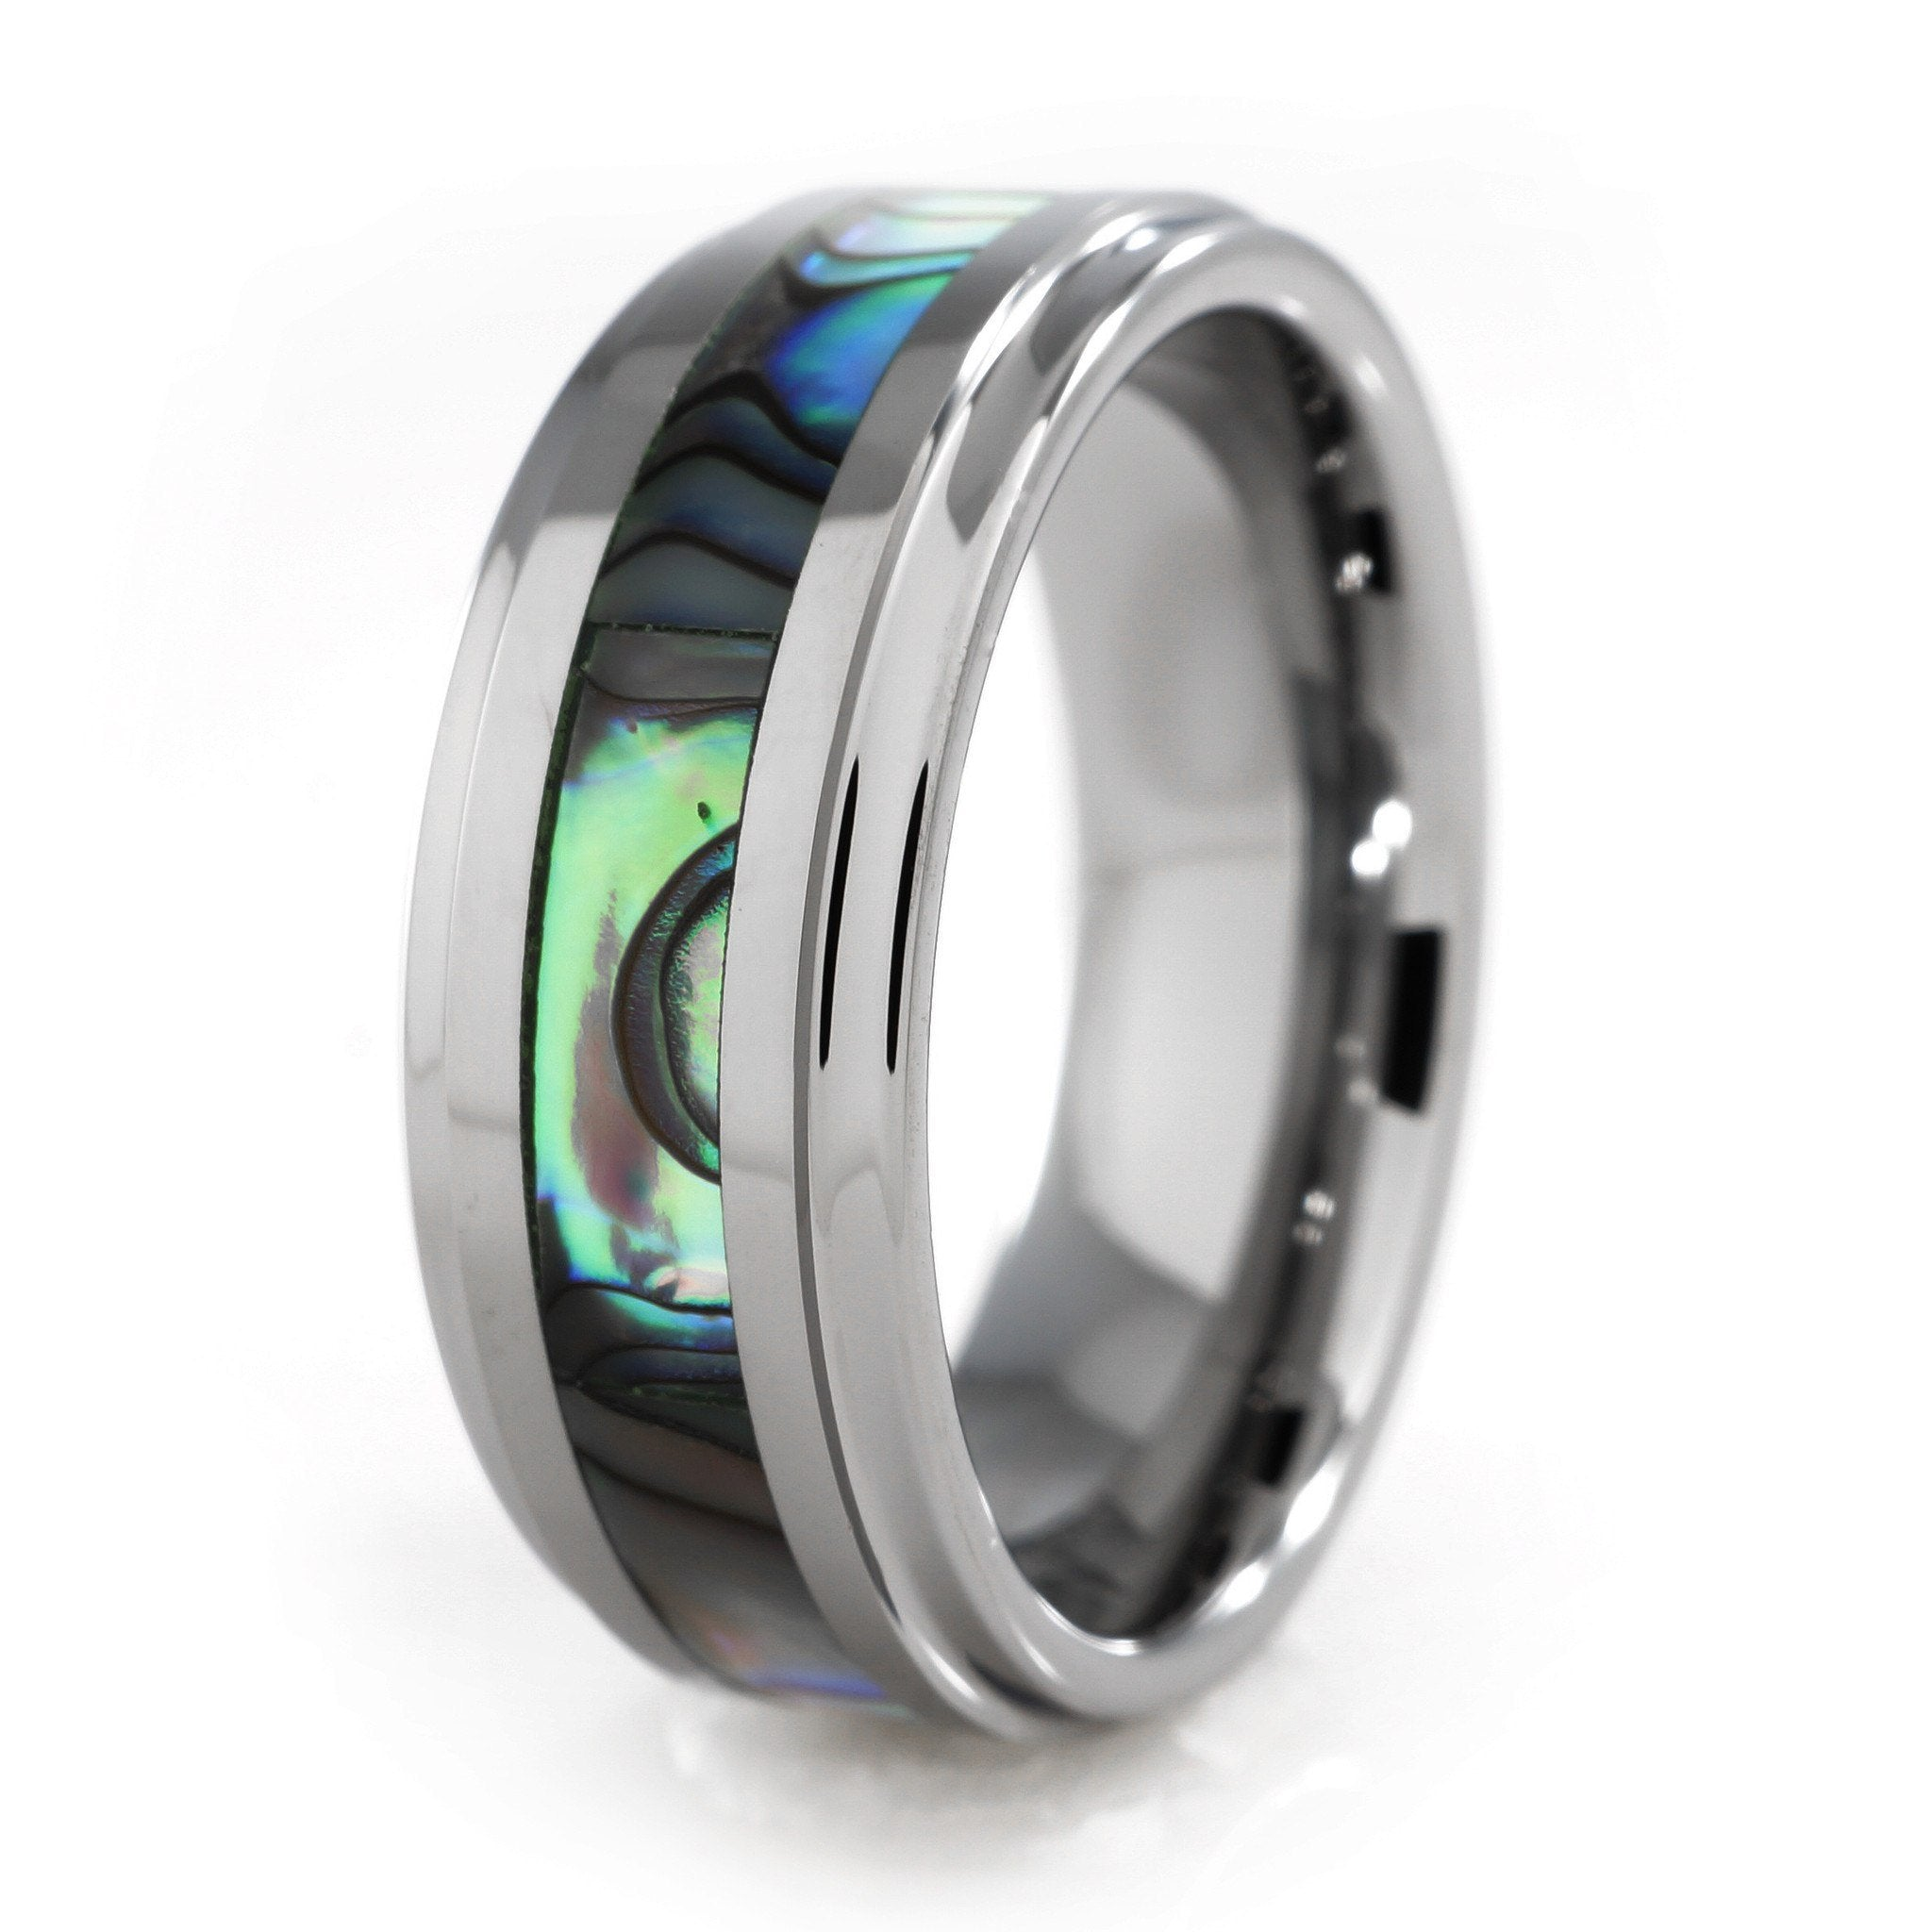 leaf jewelry rainbow handmade abalone free watches thailand on shipping product ring wrap silver rings tropical overstock over orders engagement sterling